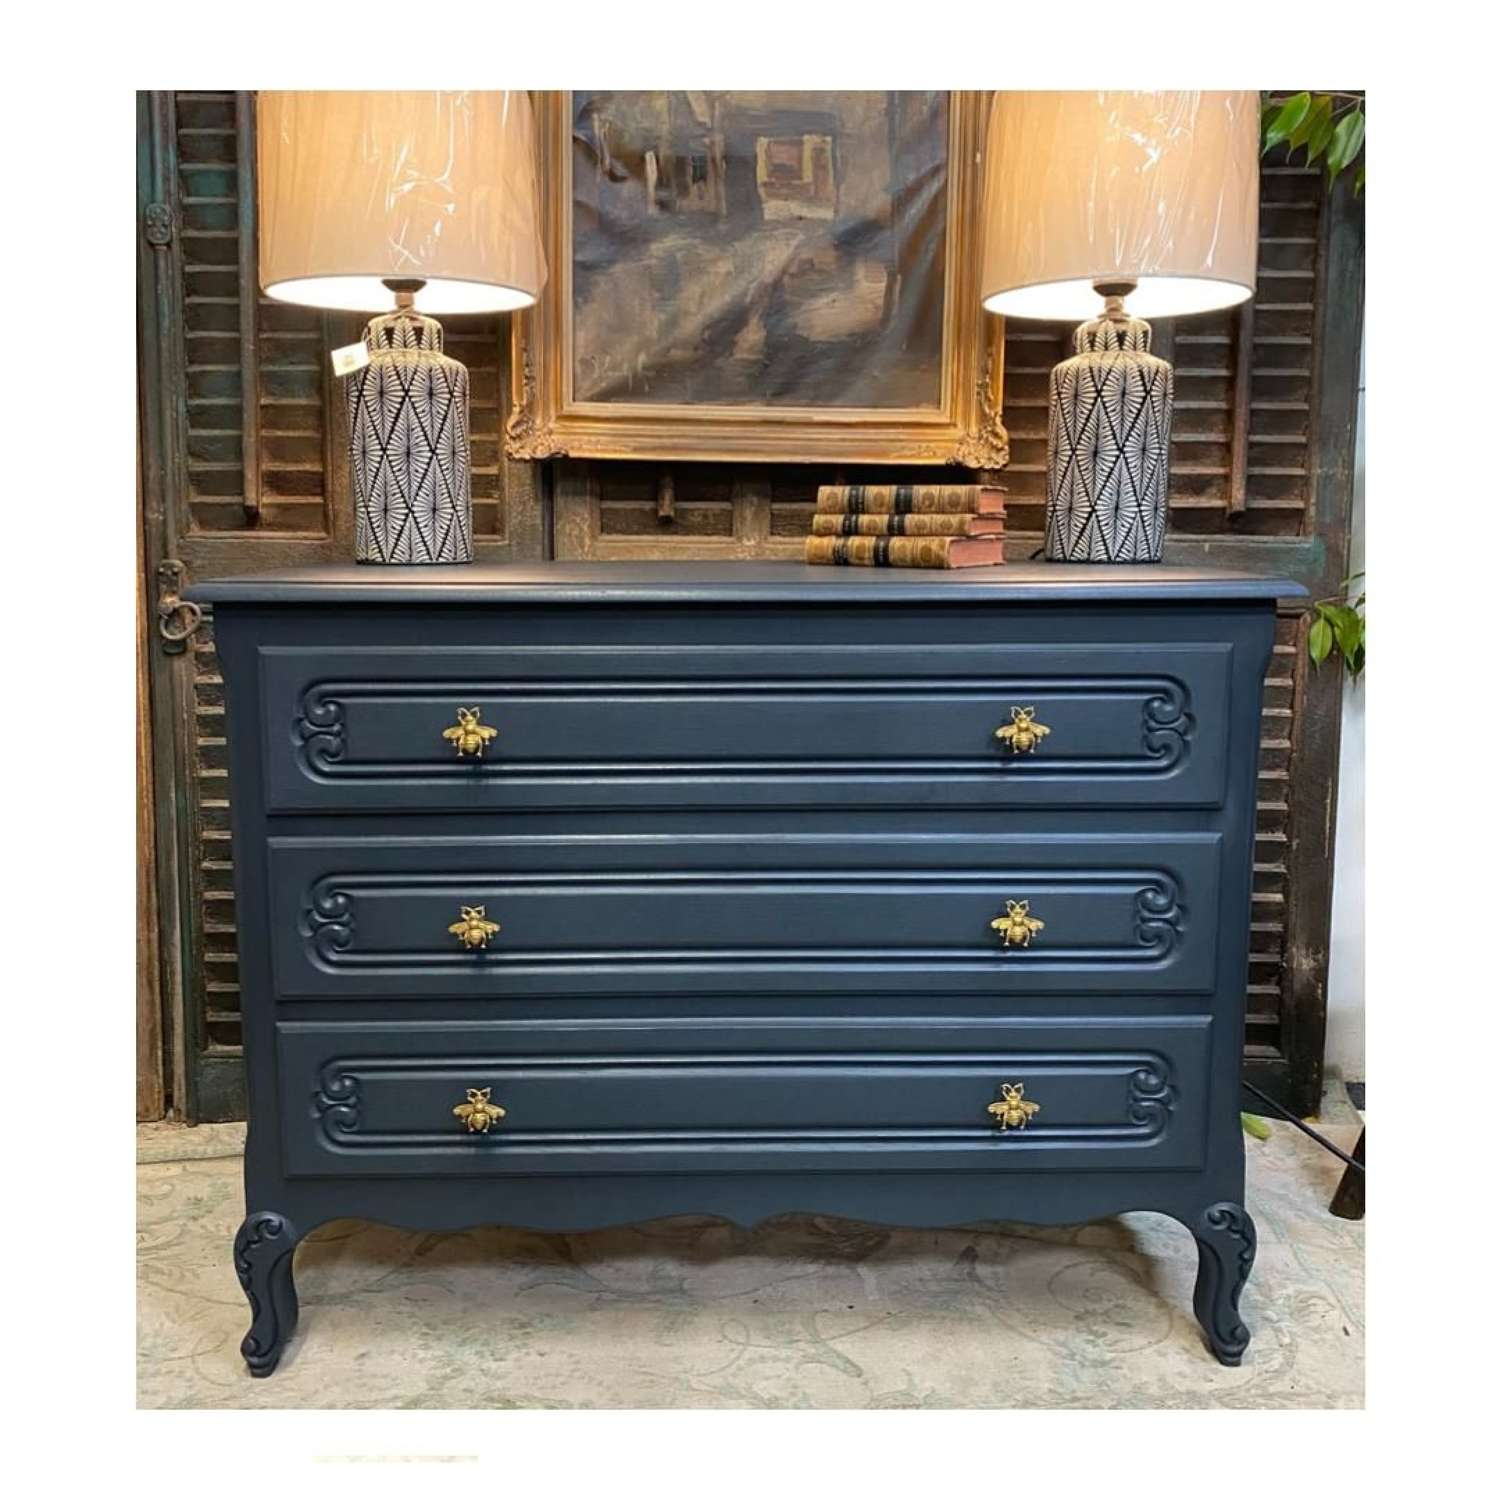 French chest of drawers painted in railings with bumblebee handles